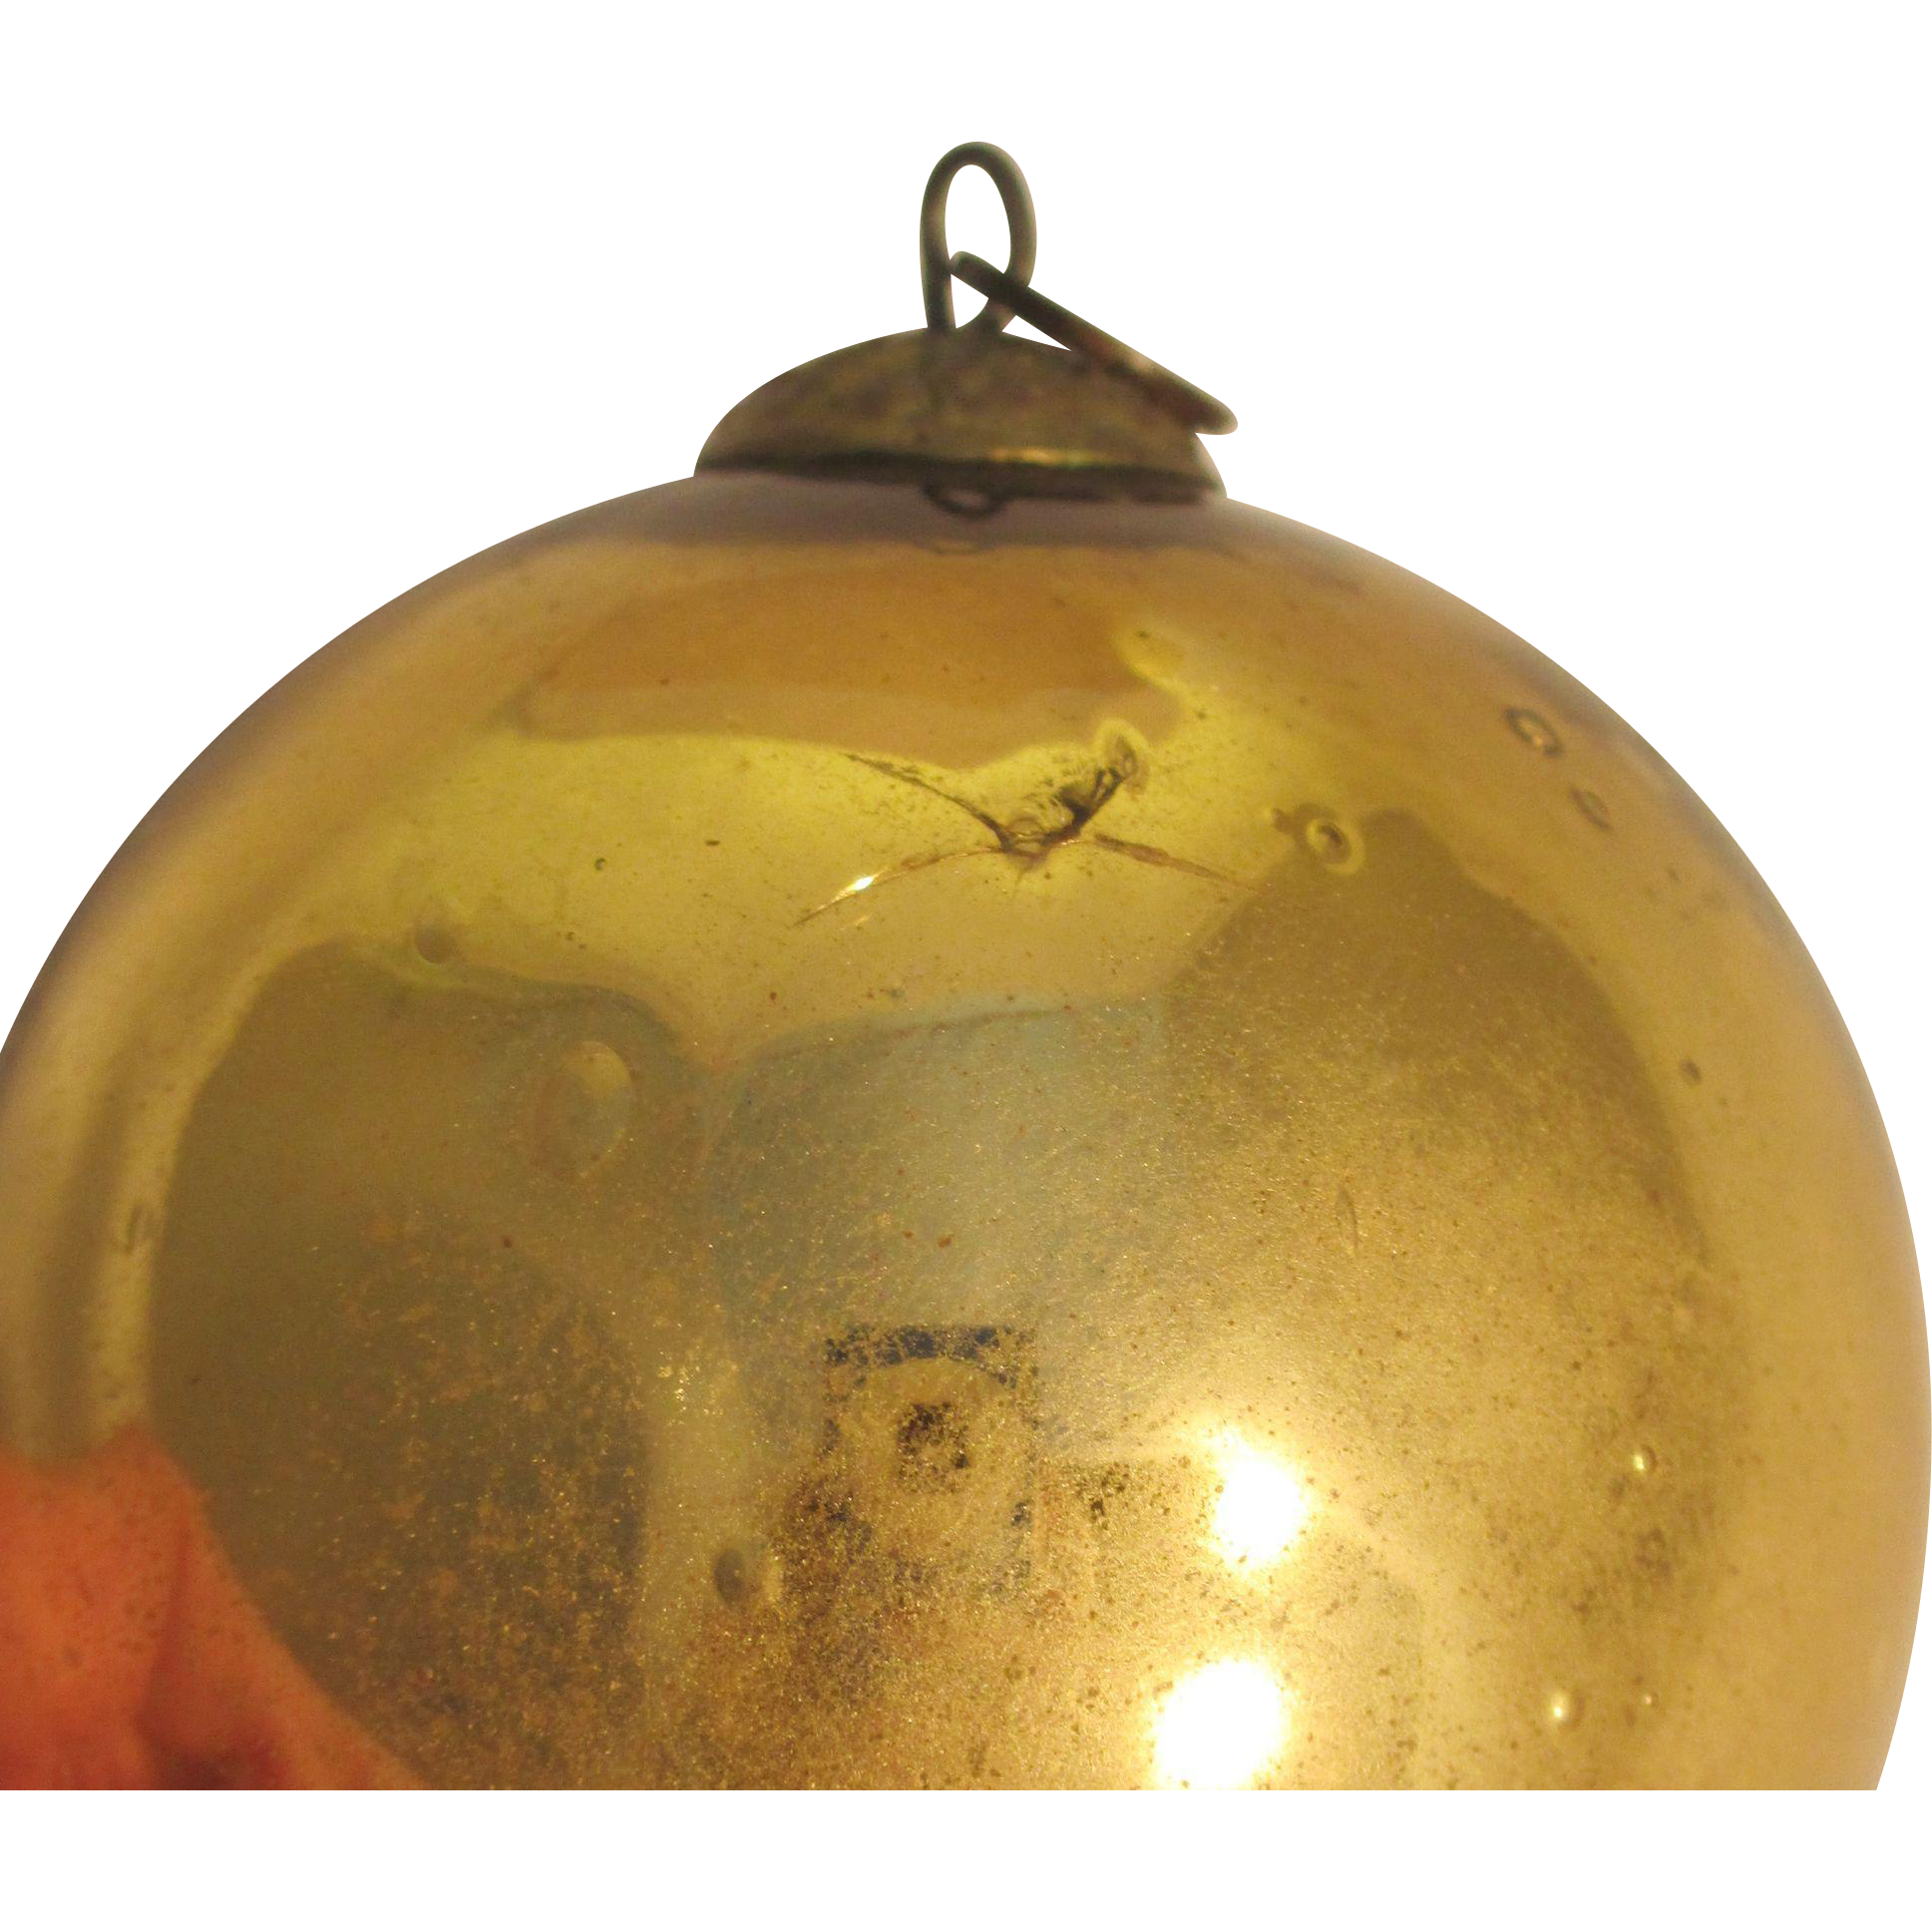 Vintage Kugel Handblown Glass Gold Bauble Ornament, Excellent Condition